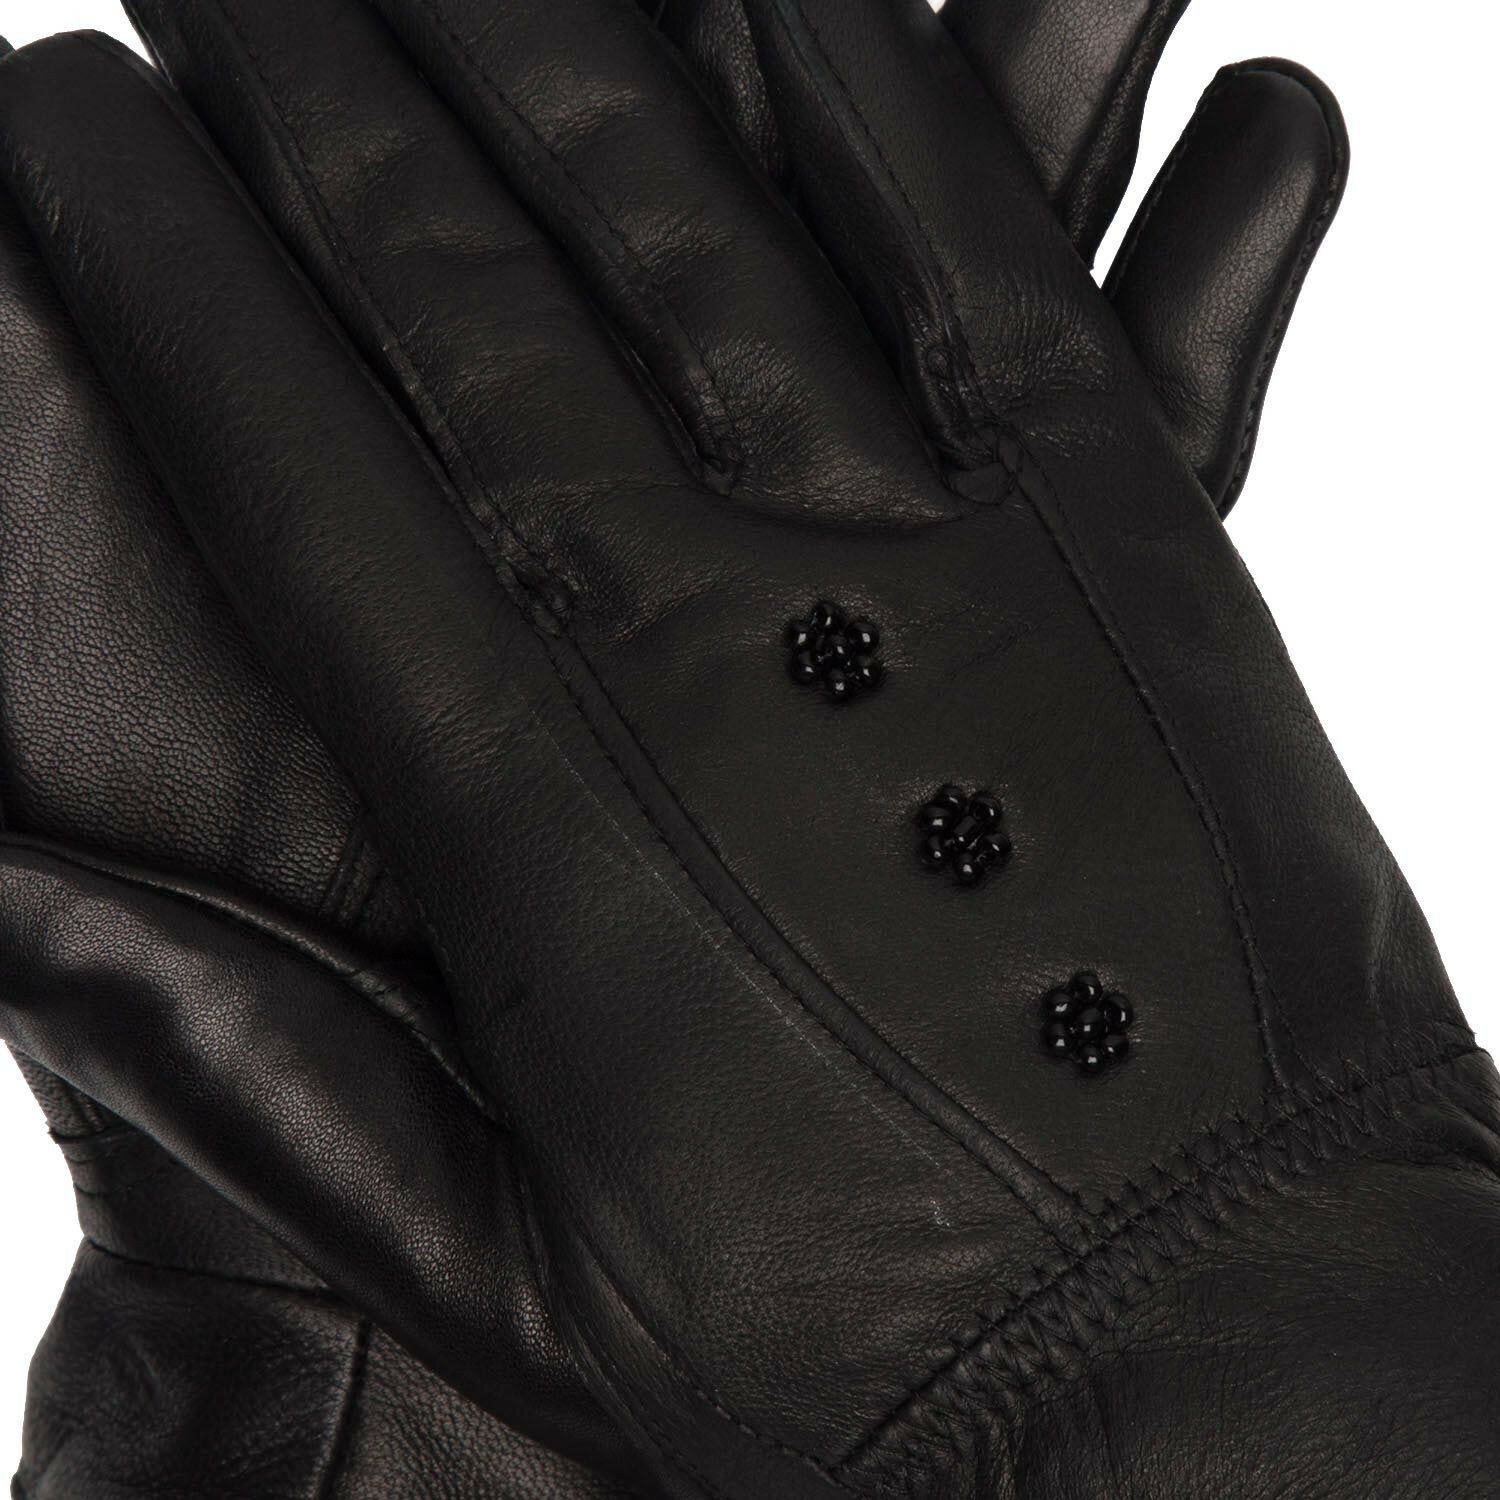 BEADED LEATHER GLOVES